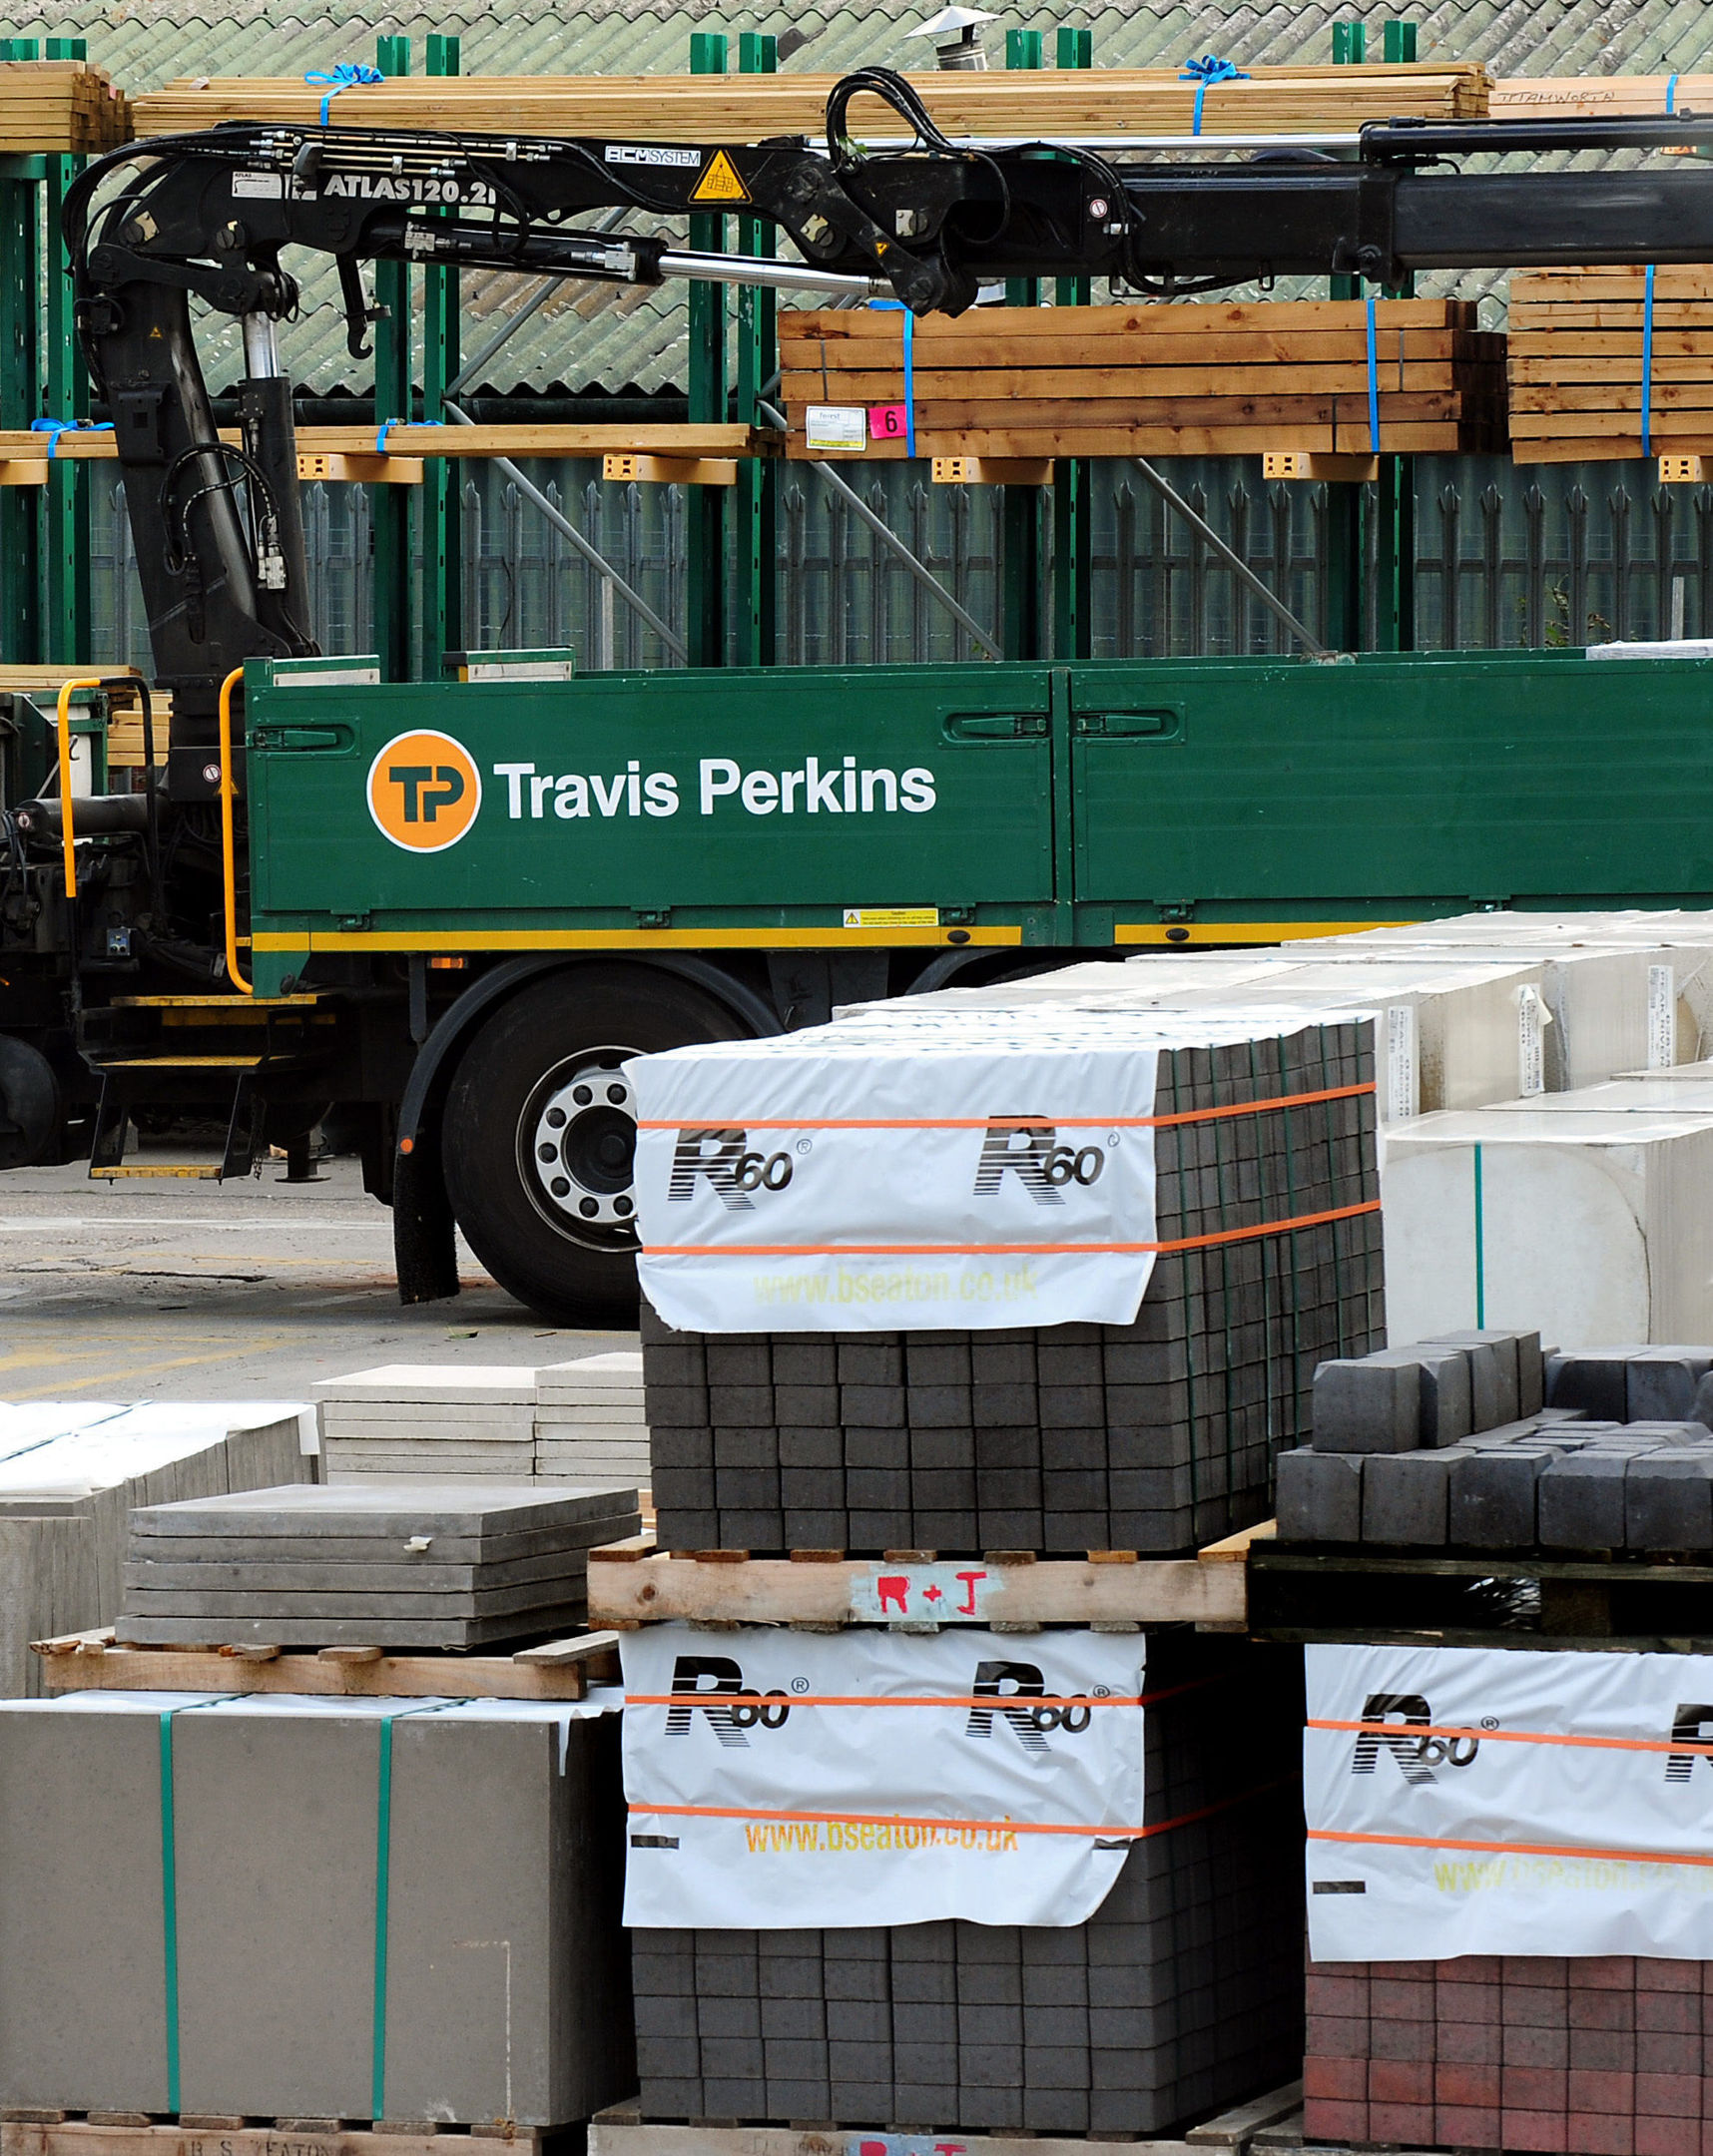 Travis Perkins is to close more than 30 branches in a move impacting 600 jobs